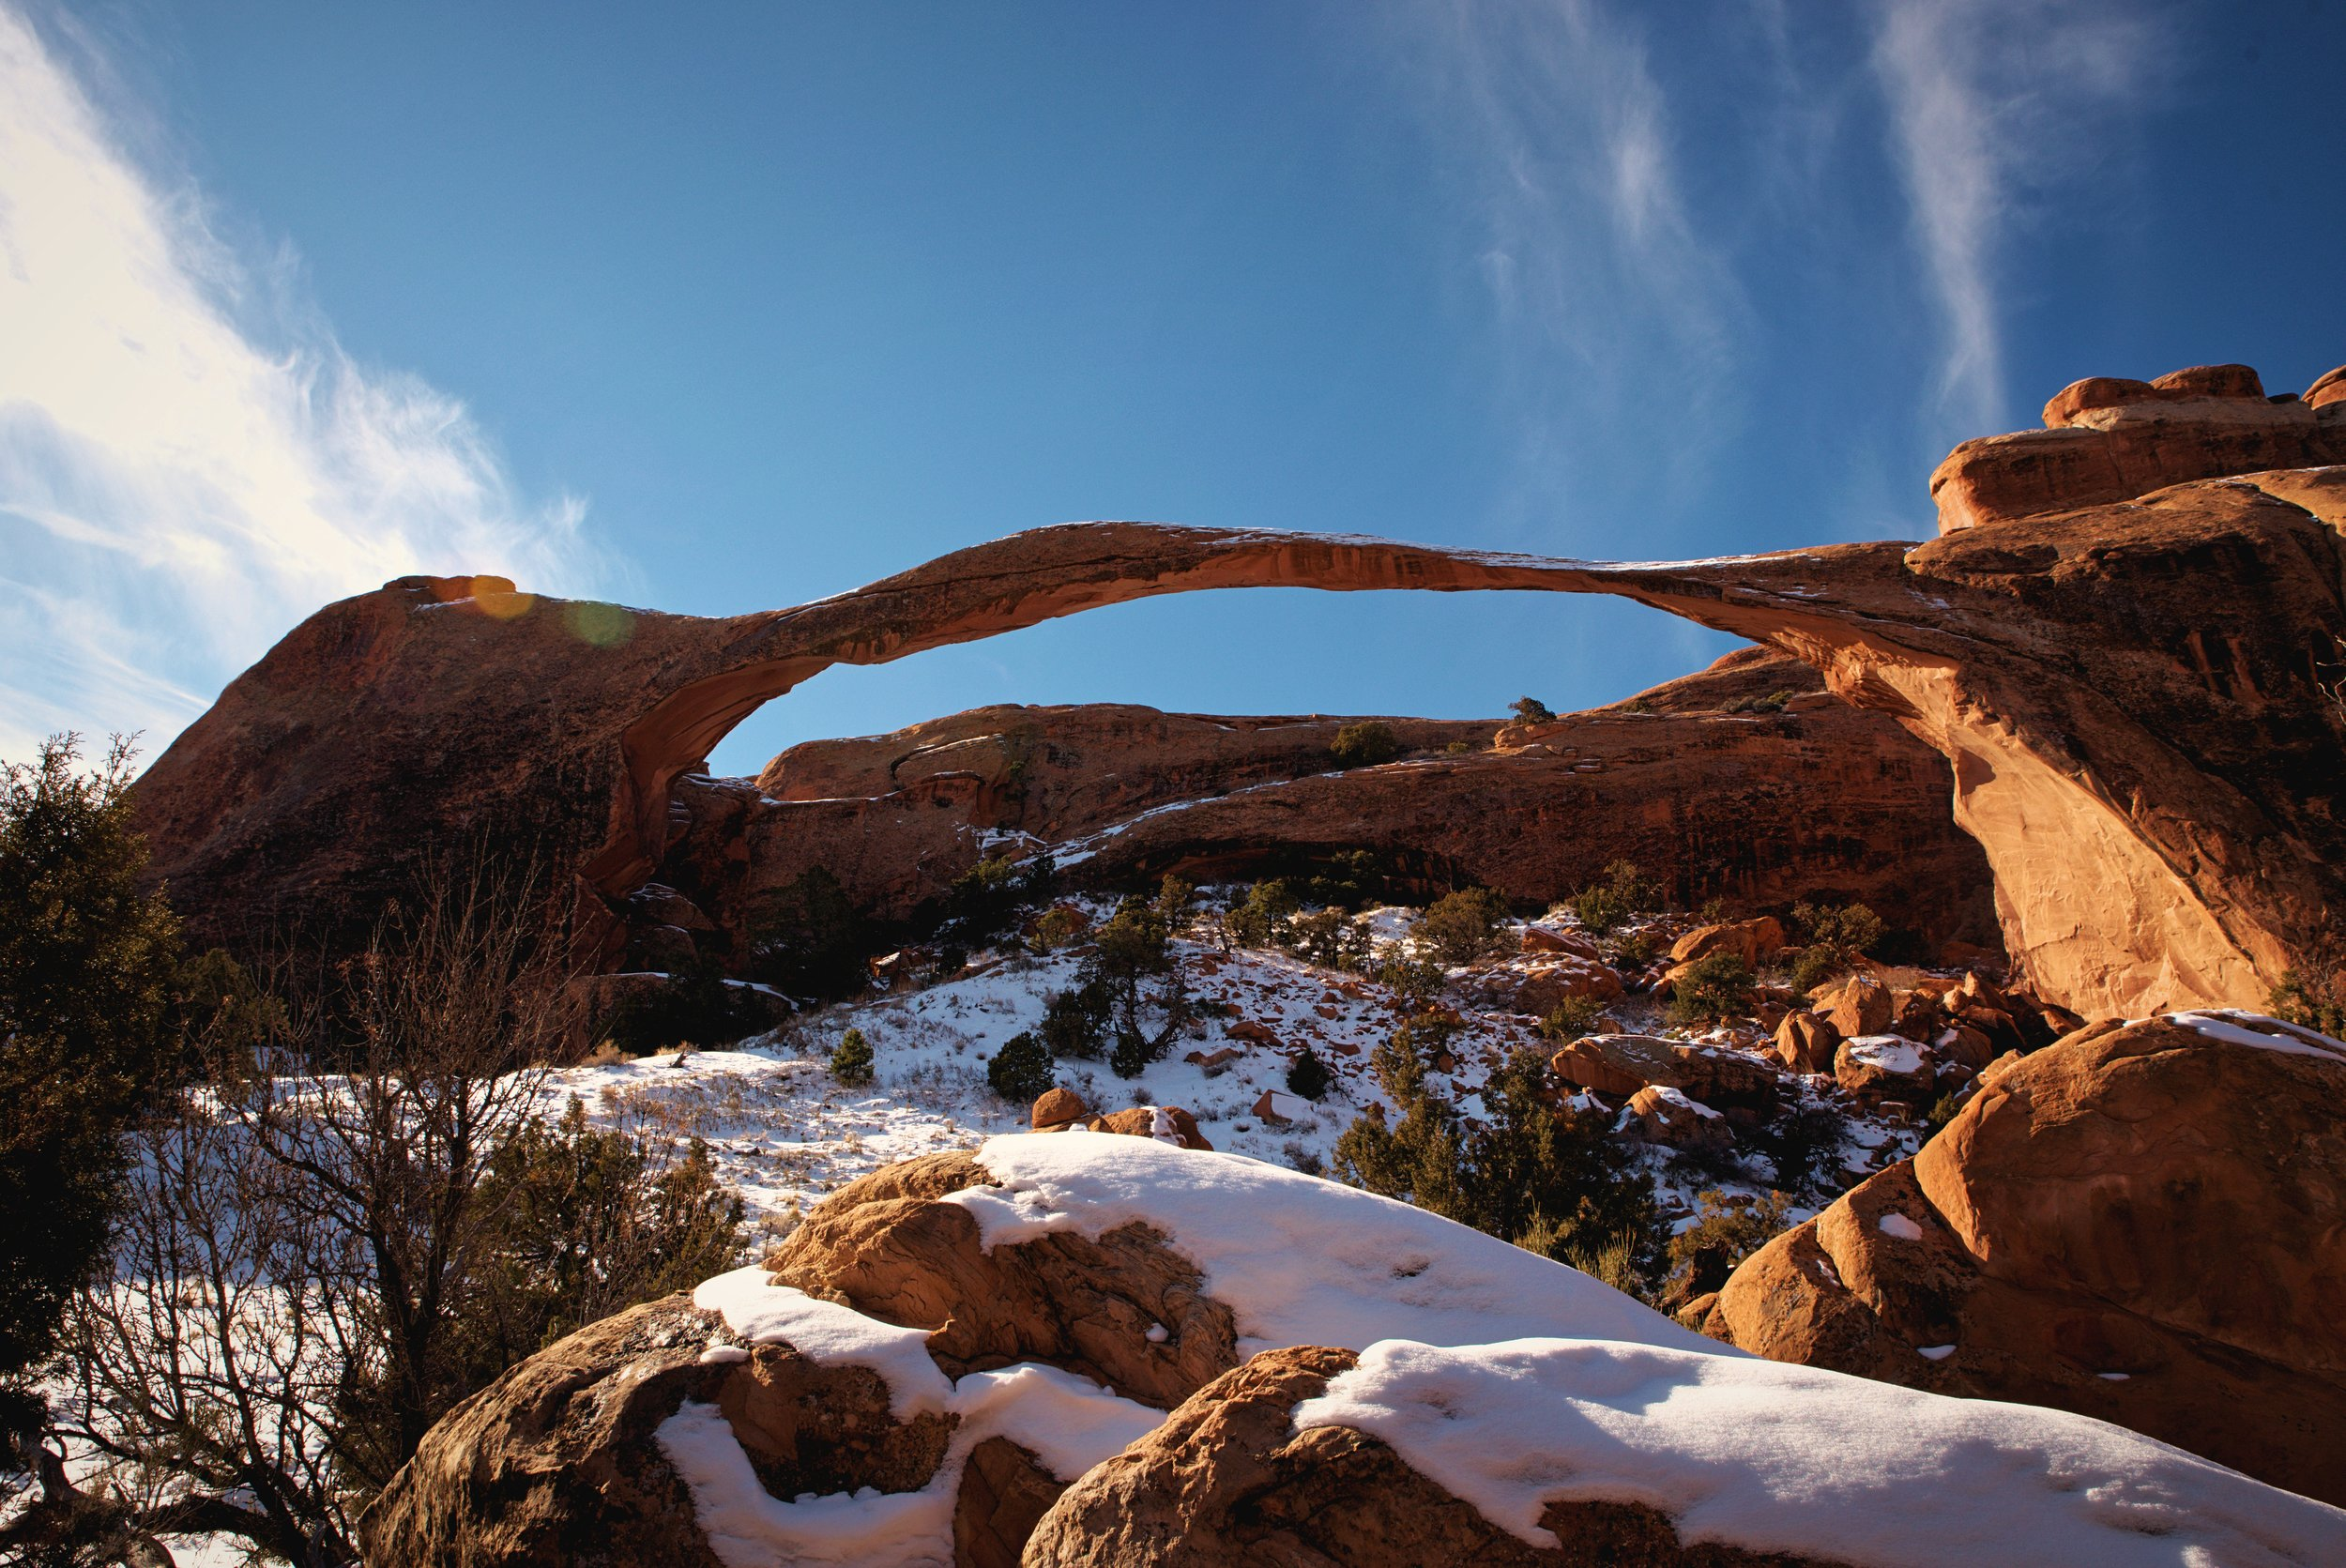 Landscape Arch is the longest arch in North America.